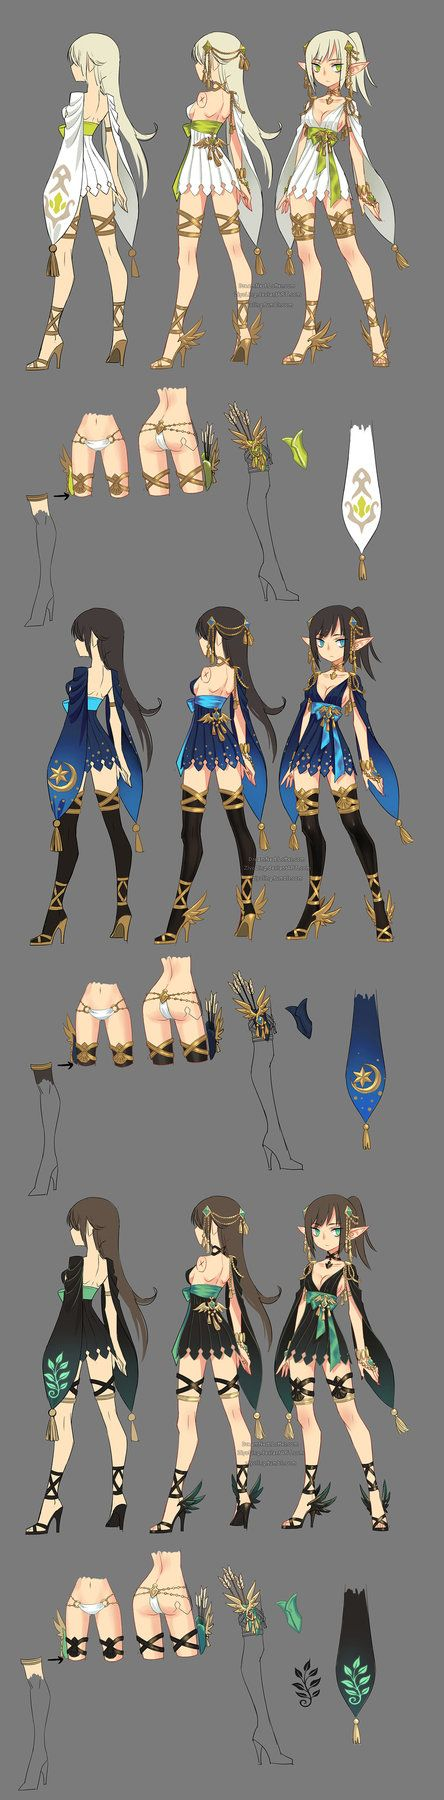 this is the myth theme costume i designed for the archer class of MMO game Dragon Nest in 2014. =) the other classes of this series           &nb...